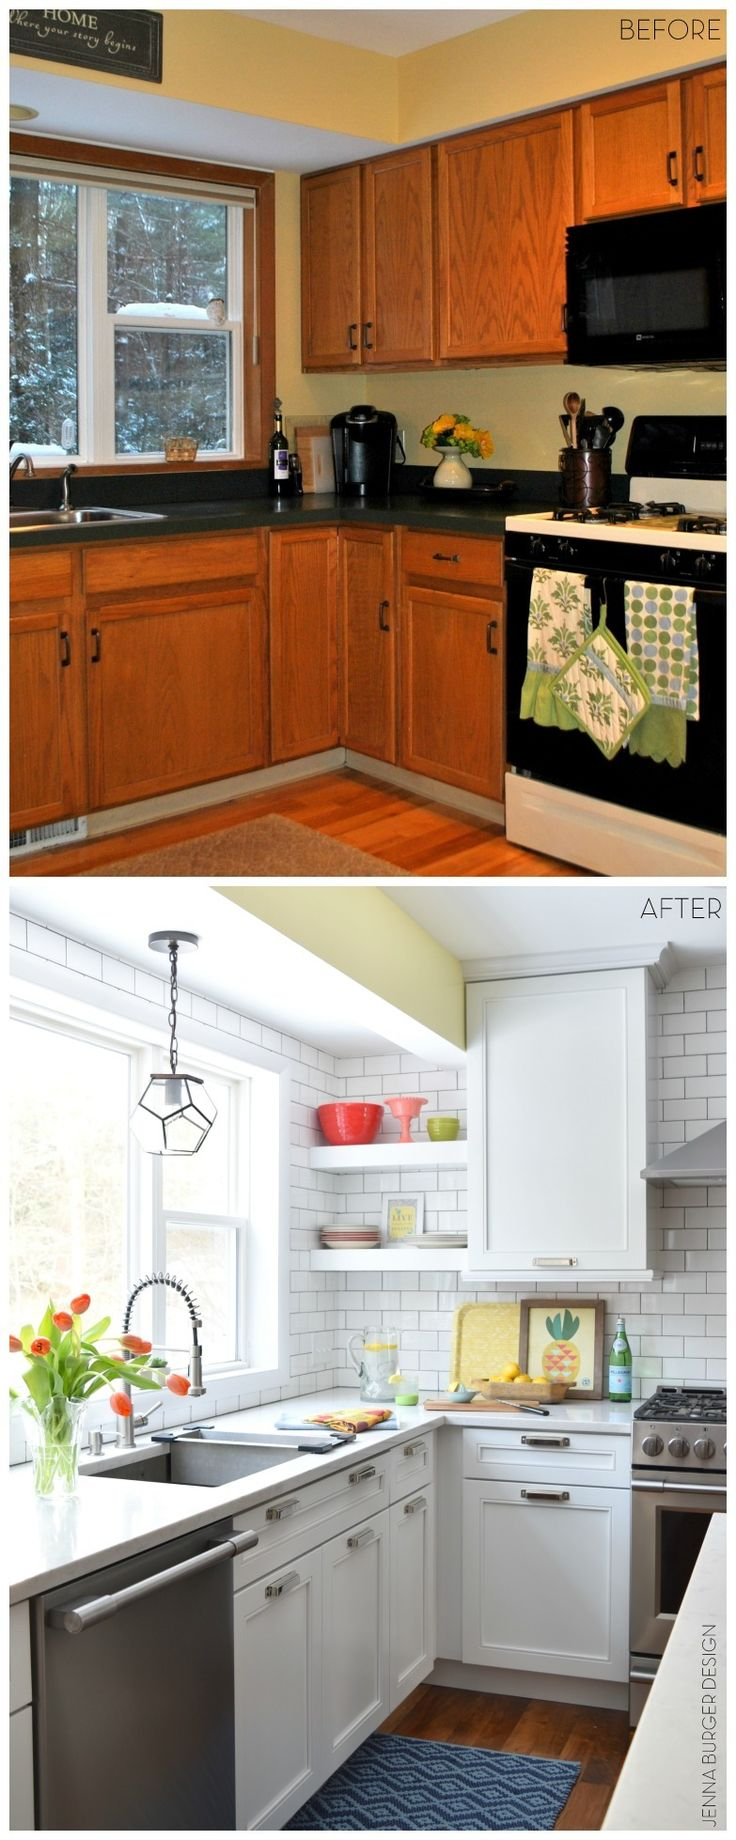 Kitchen Renovation Backsplash best 25+ before after kitchen ideas on pinterest | before after